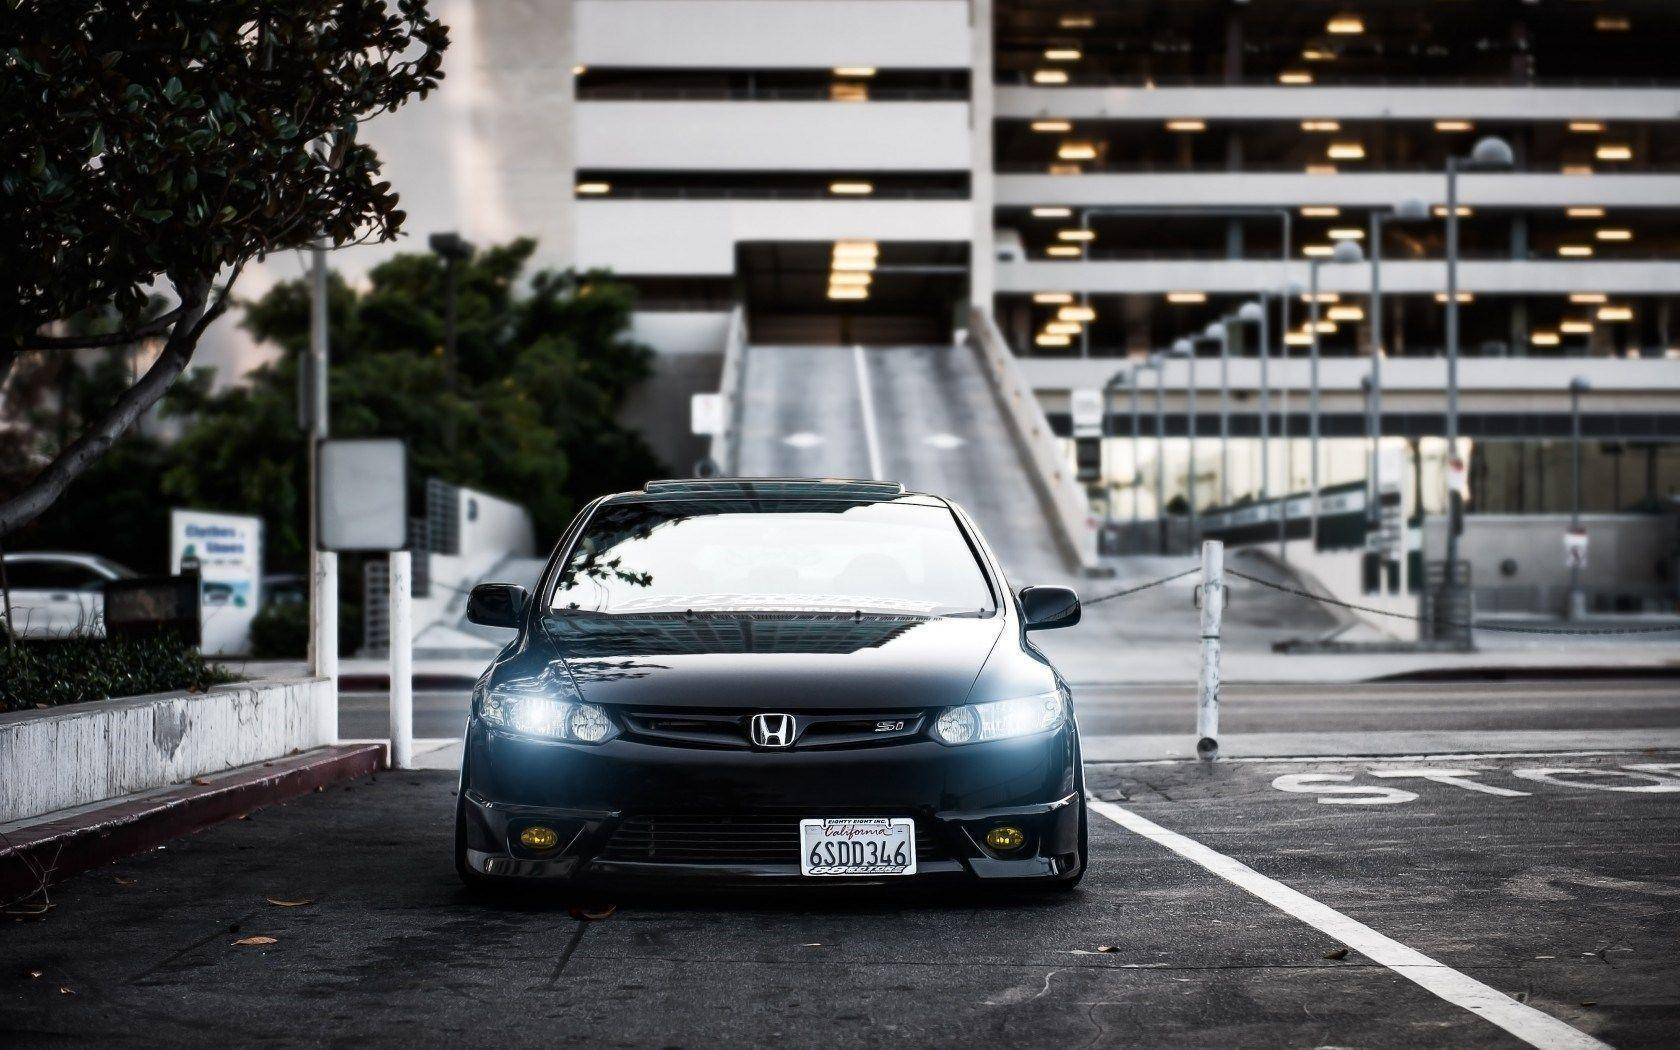 Honda Civic Car Lights Tuning HD Wallpapers